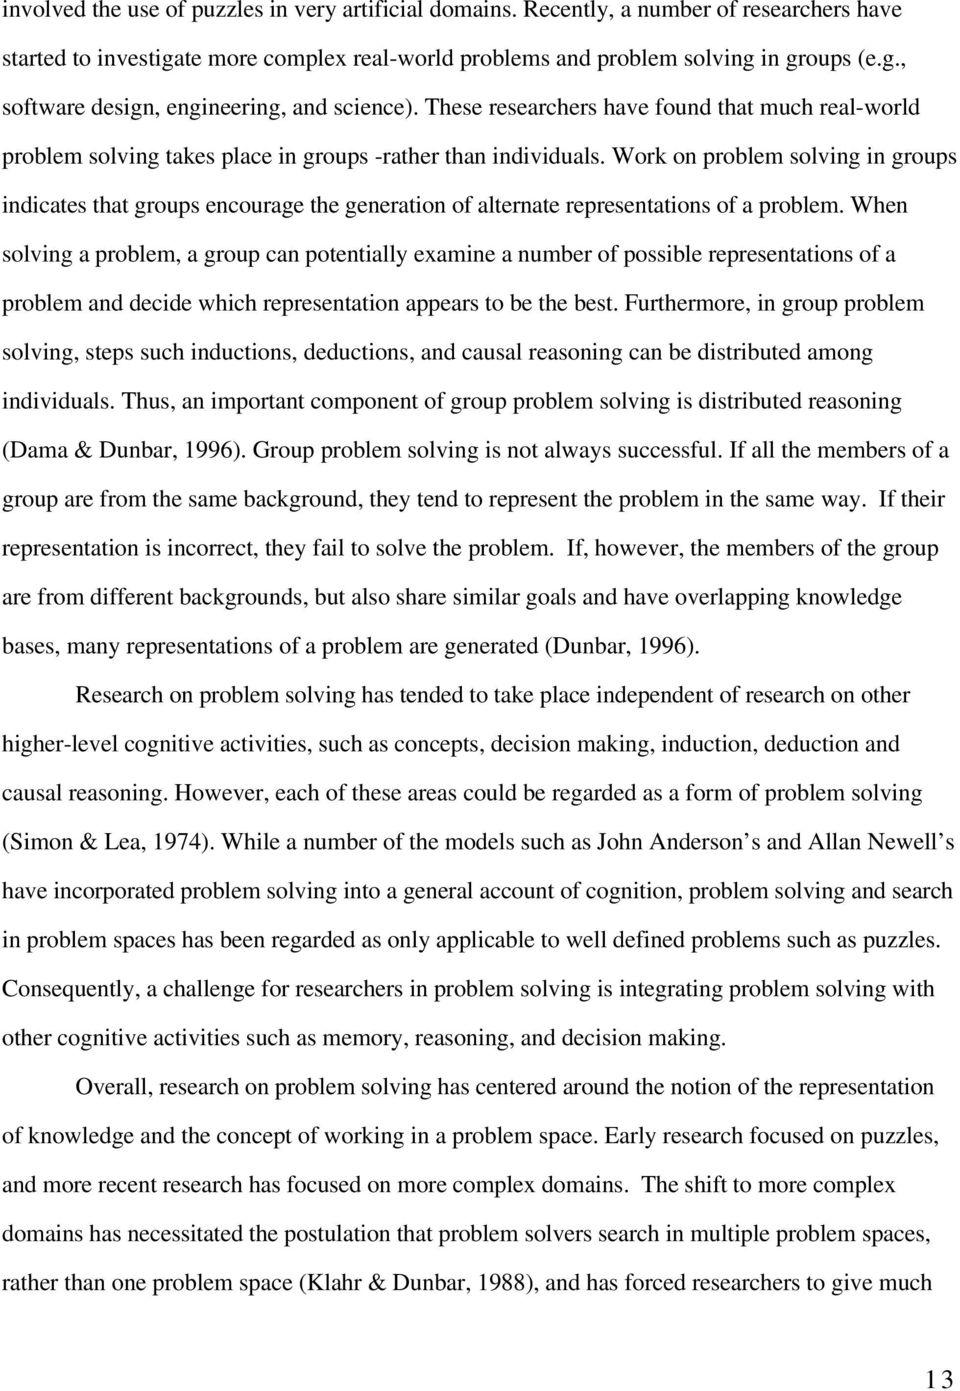 Work on problem solving in groups indicates that groups encourage the generation of alternate representations of a problem.